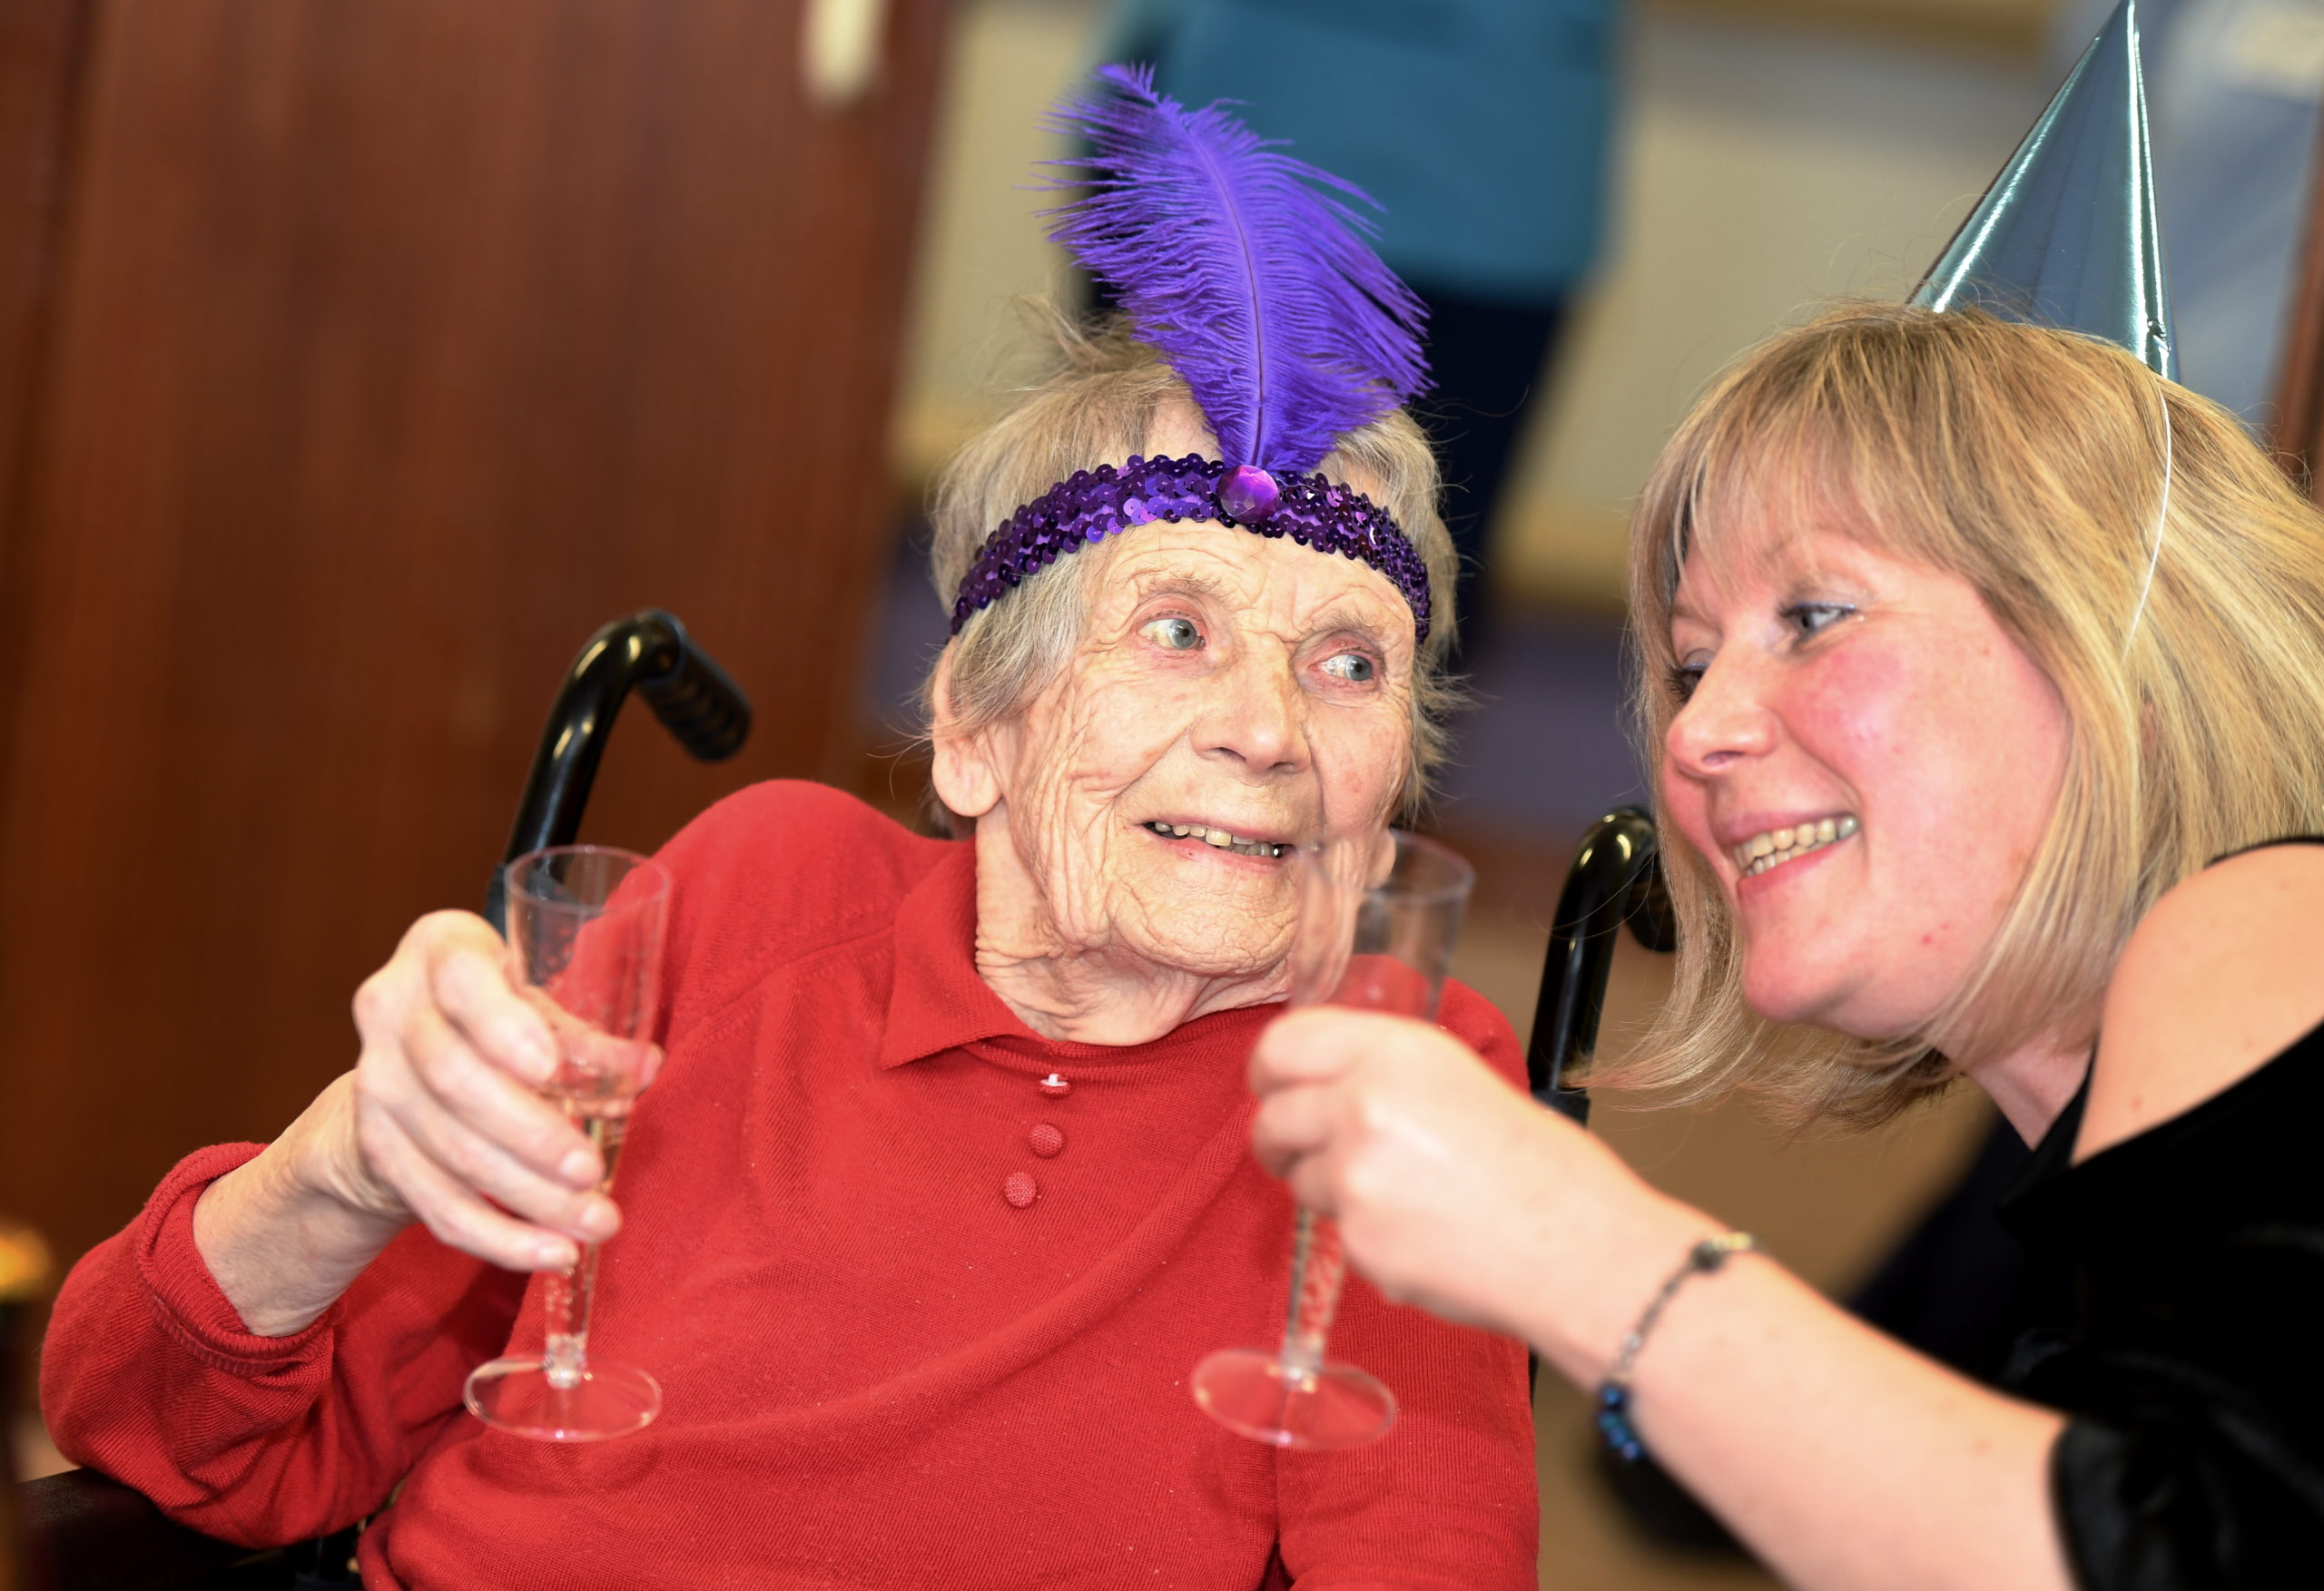 100-year-old Grace 'Bunty' MacKintosh enjoys a glass of fizz at the party with her grand-daughter Suzy. Picture by Kami Thomson